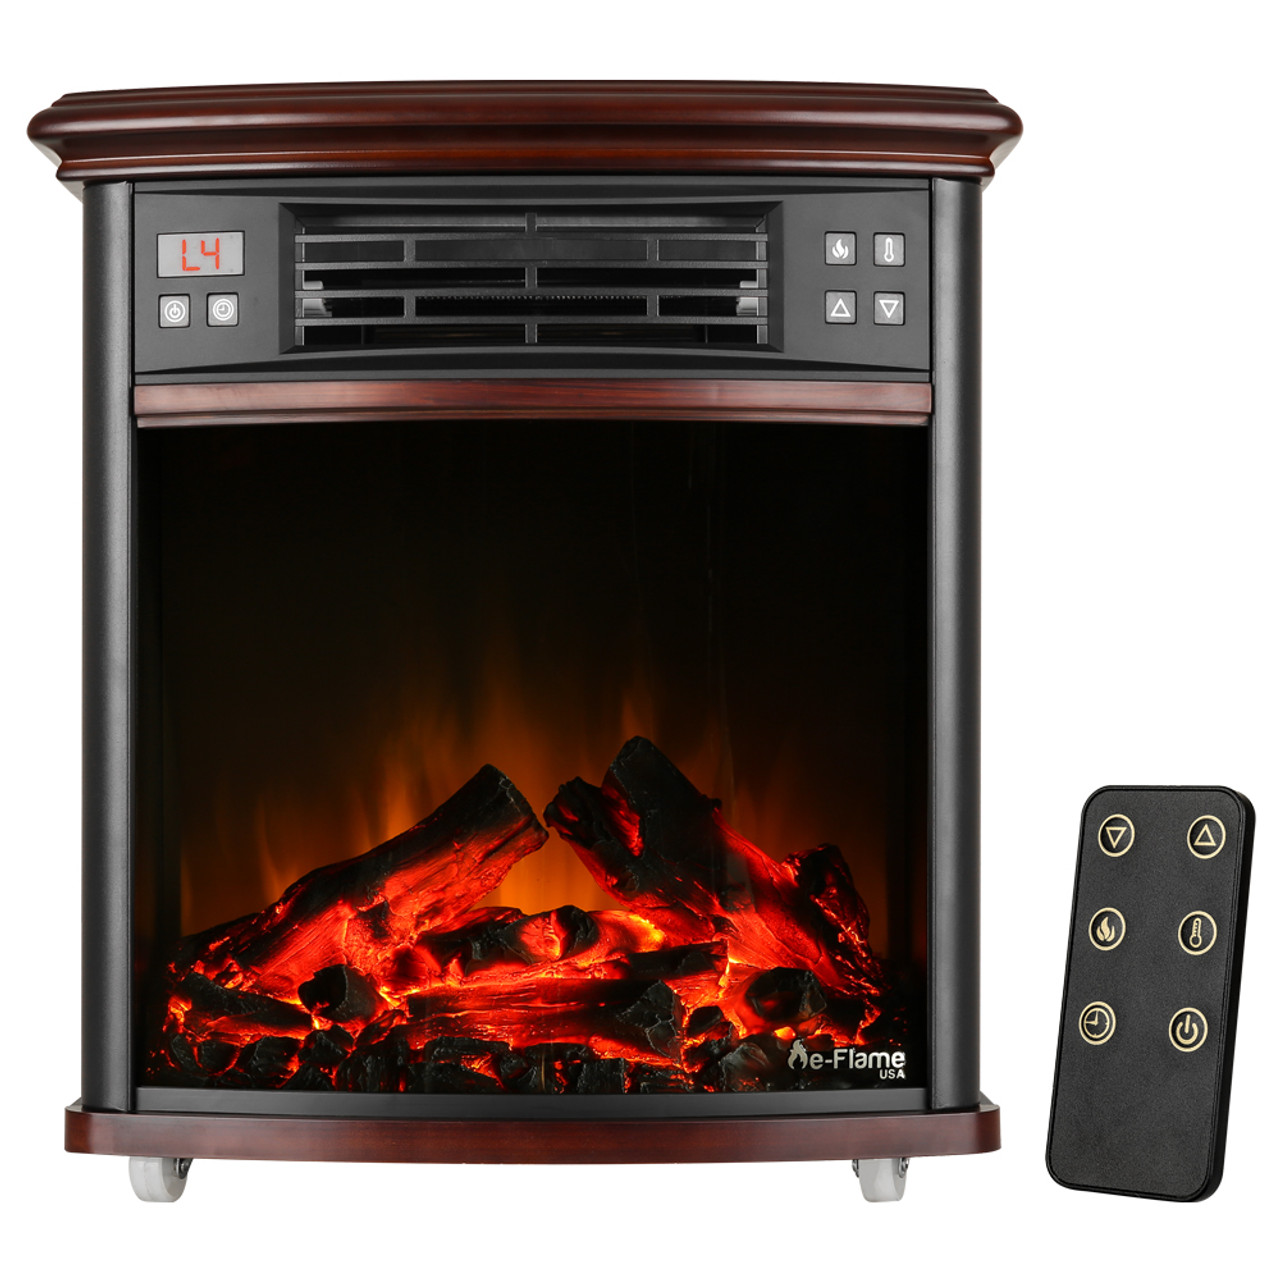 Space Heaters Fireplace Charleston Portable Electric Fireplace Stove With Remote